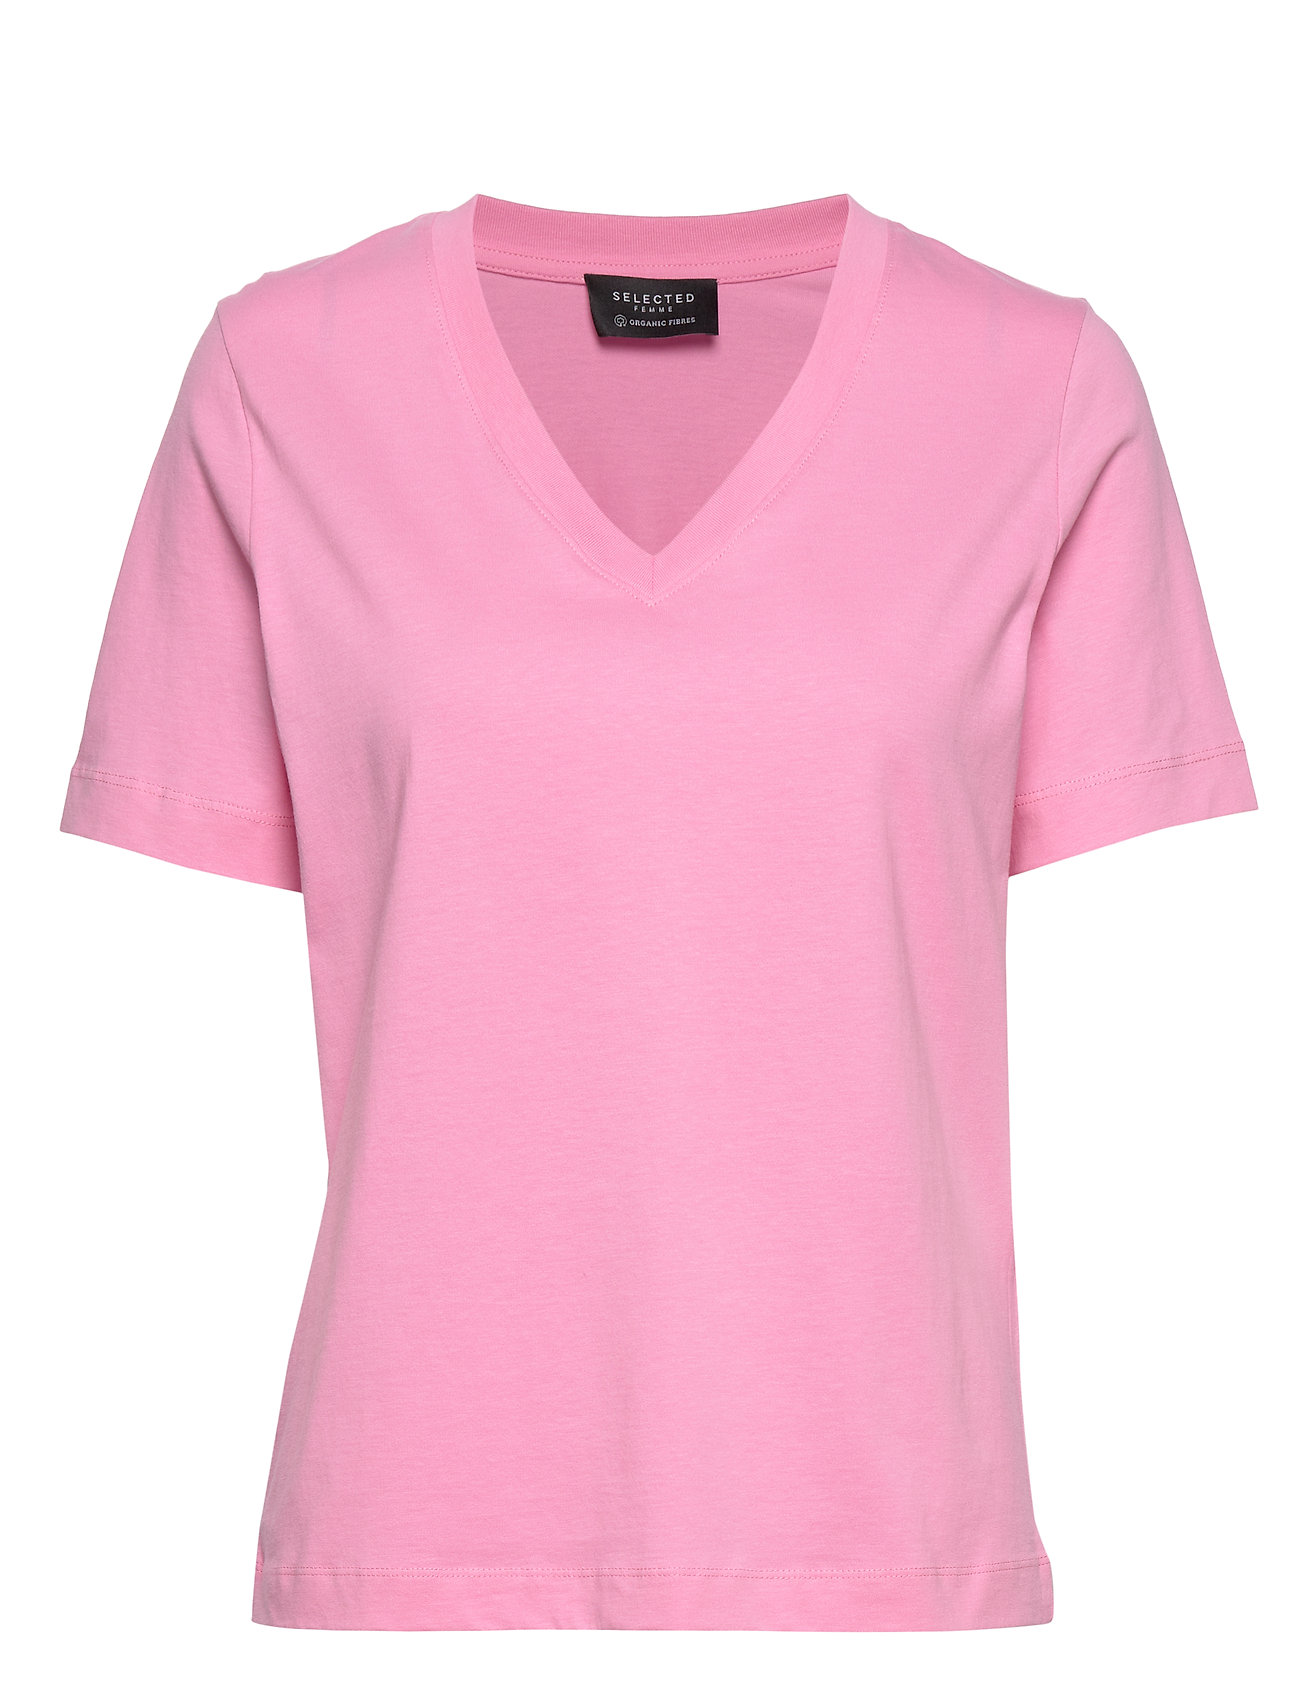 Selected Femme SLFSTANDARD SS V-NECK TEE SEASONAL - ROSEBLOOM